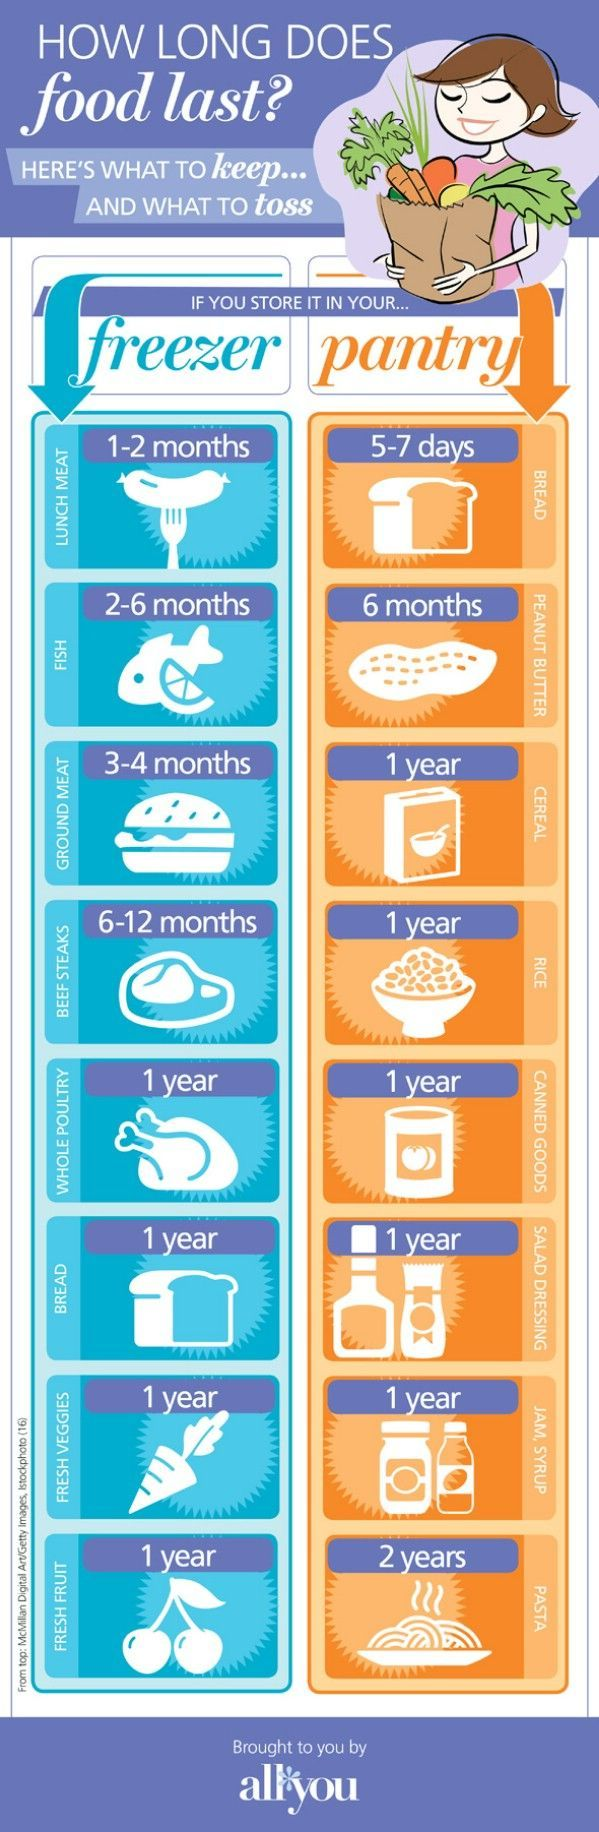 Food Storage - 18 Professional Kitchen Infographics to Make Cooking Easier and Faster